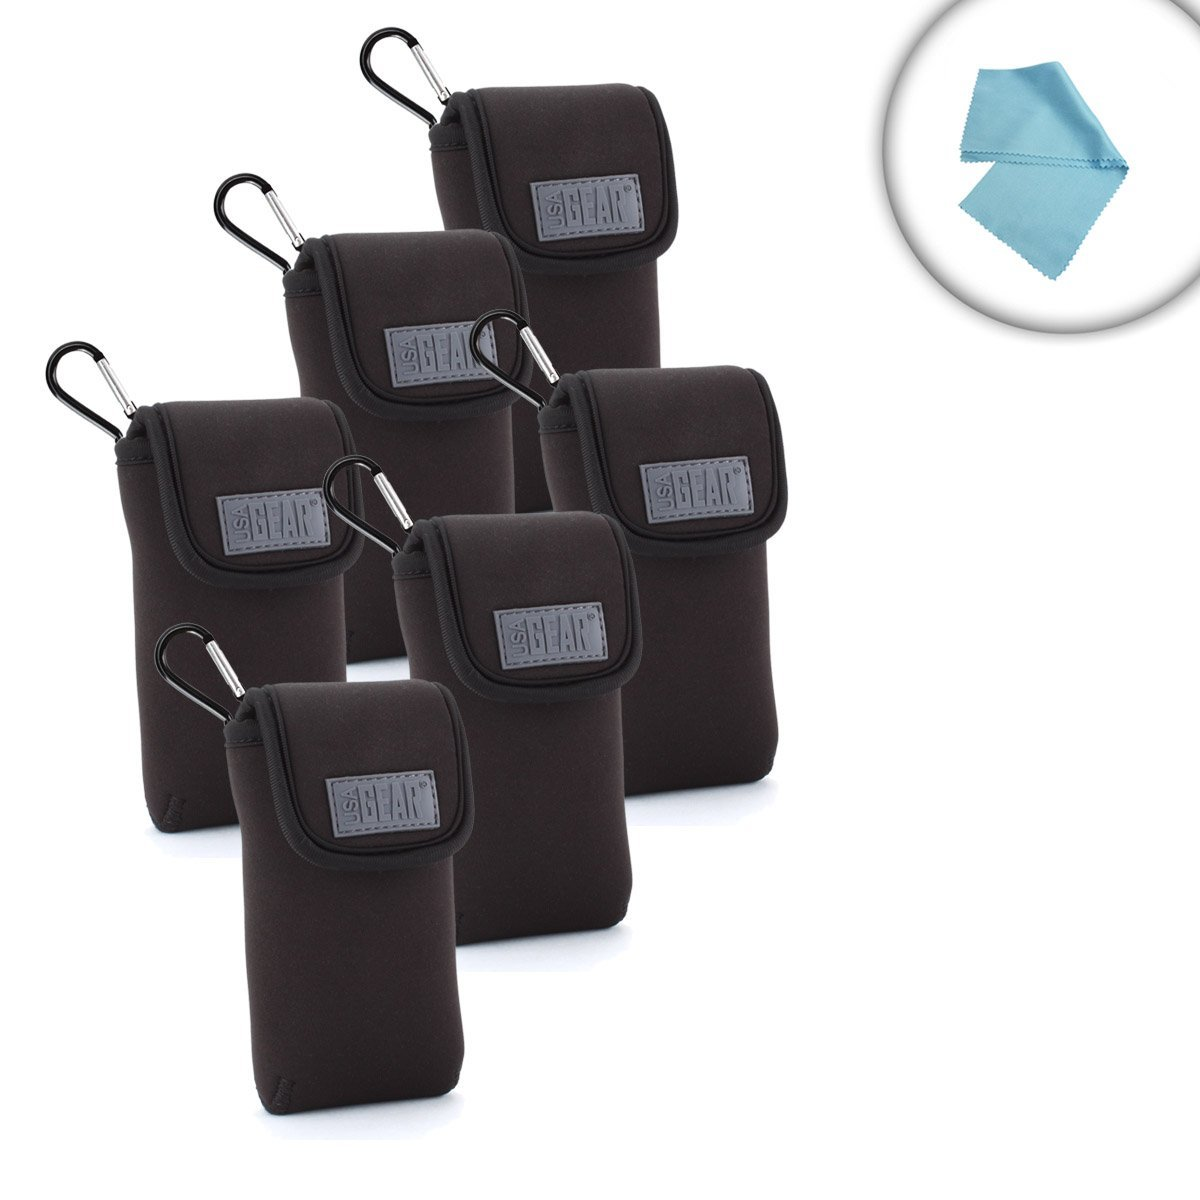 Scratch Resistant 6 Pack Portable Radio Carrying Covers w...